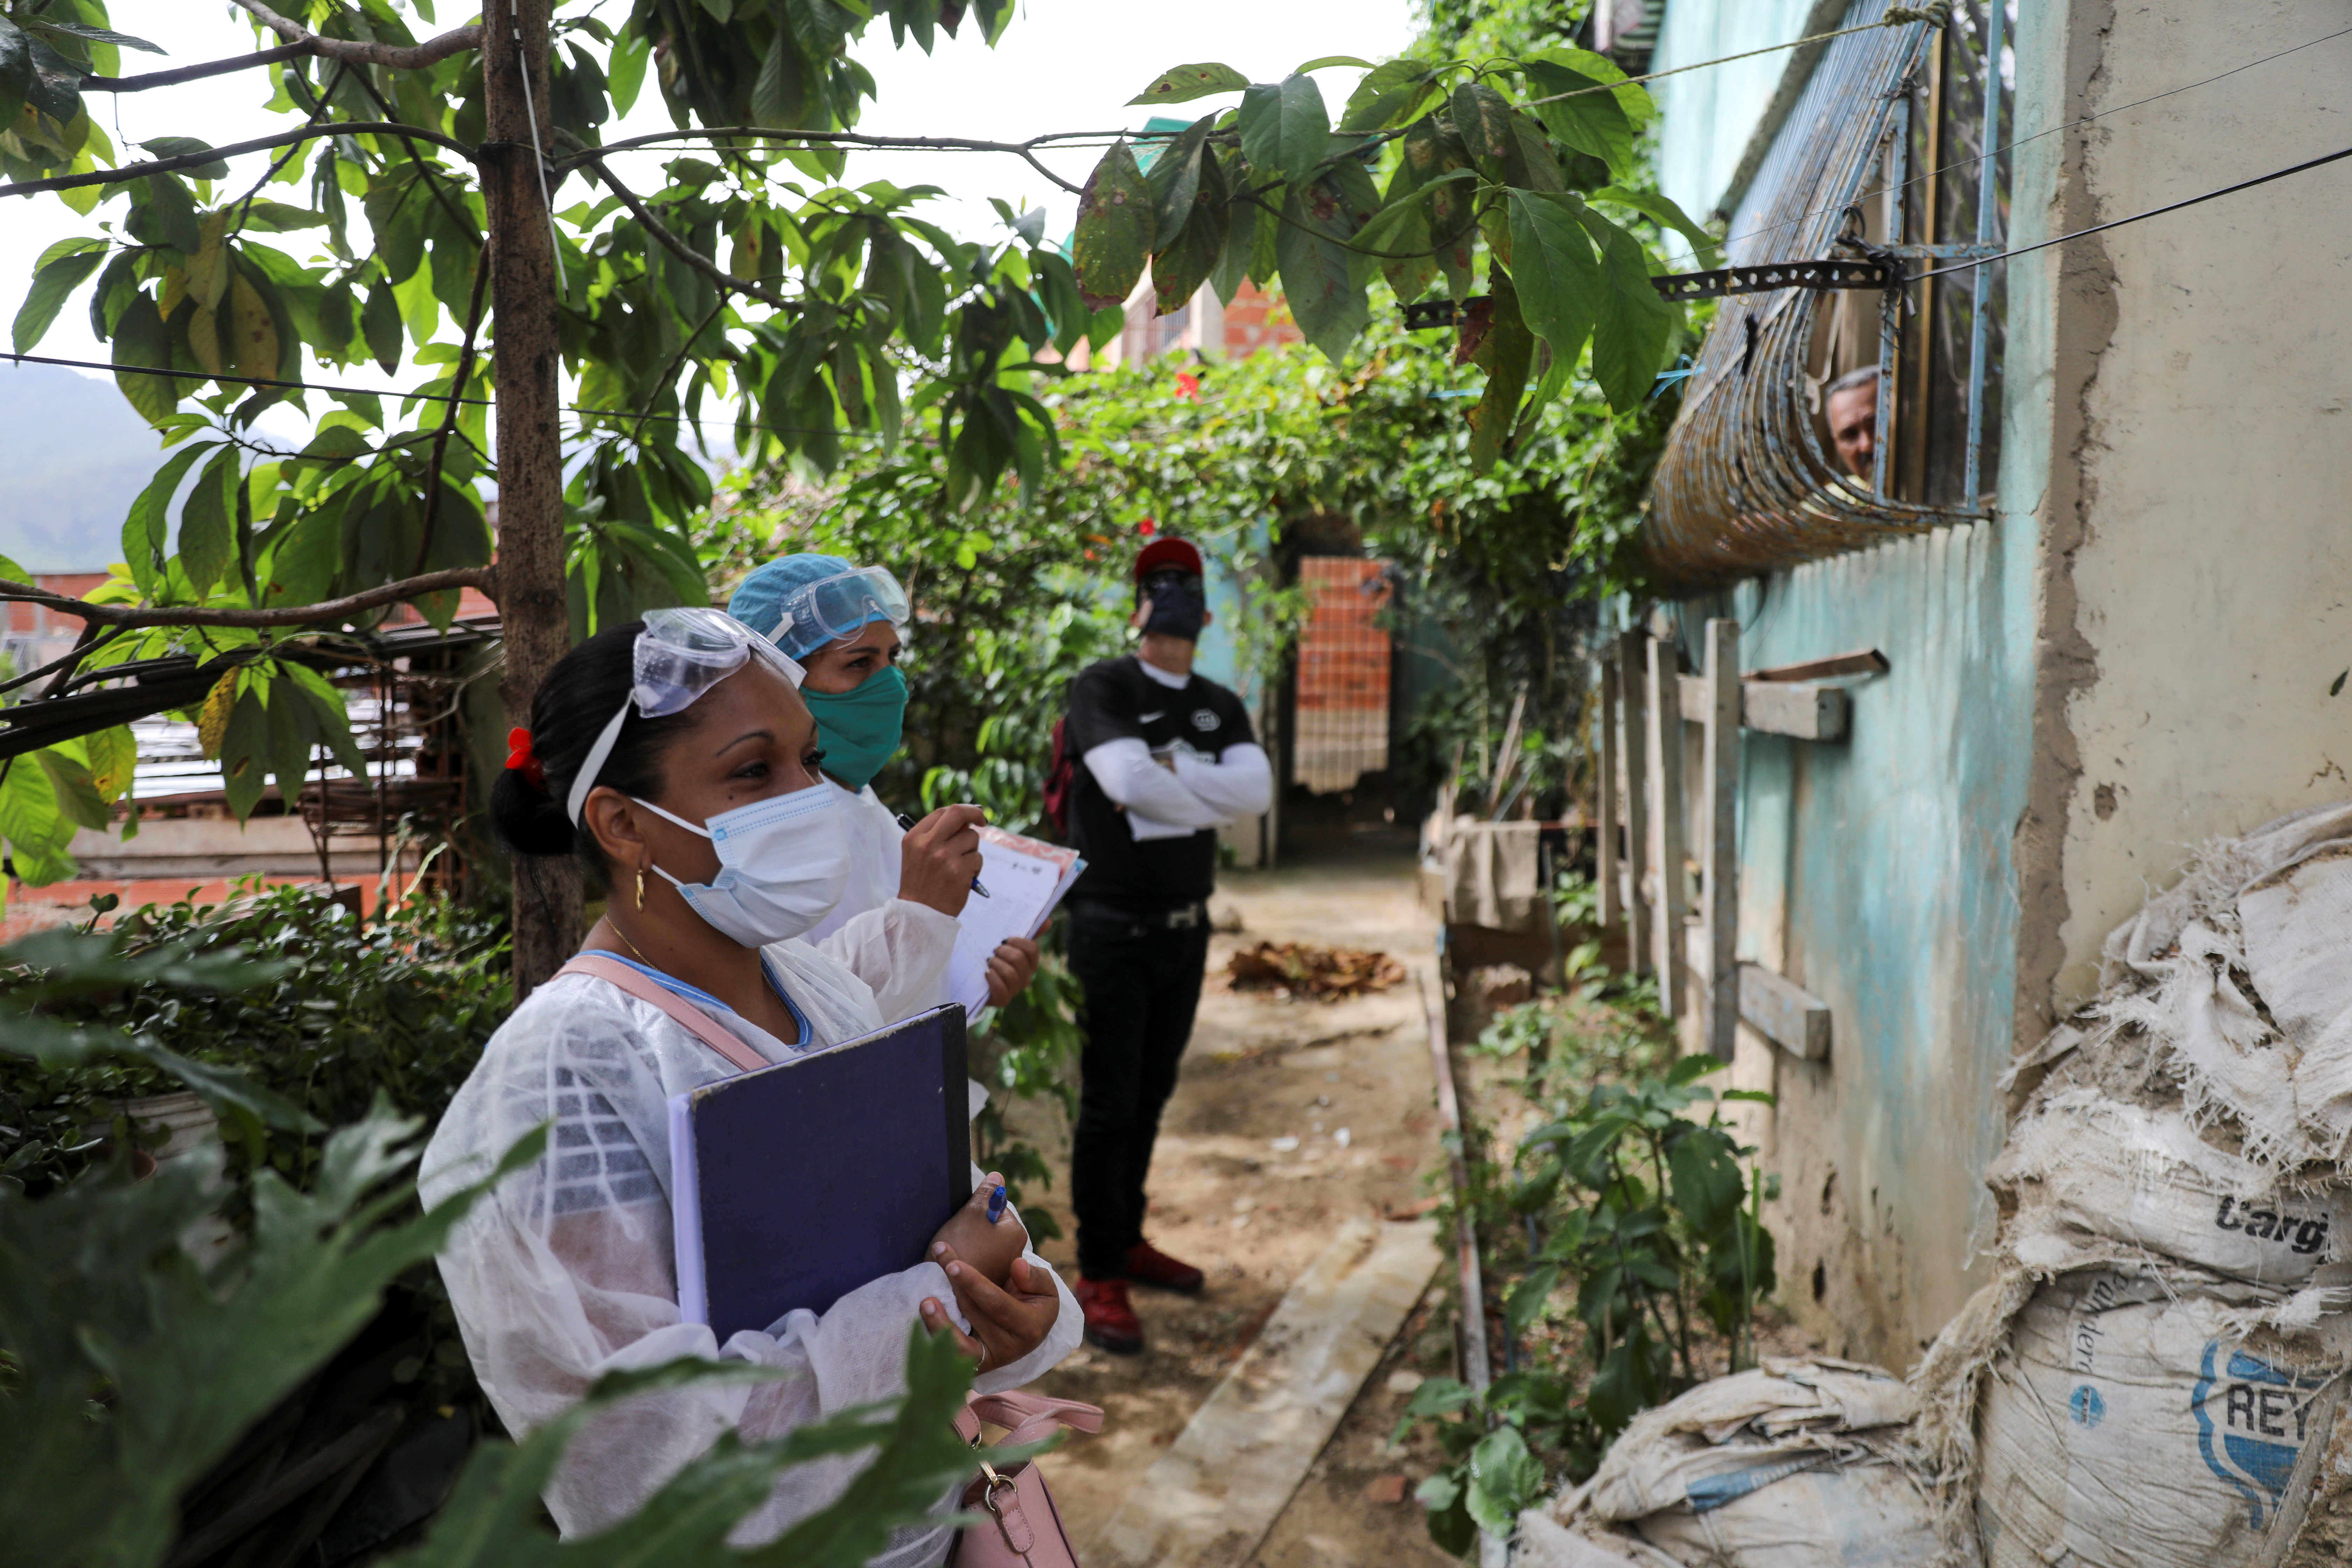 Doctors take a walking round at the low-income neighborhood of Las Mayas, as cases rise amid the coronavirus disease (COVID-19) outbreak, in Caracas, Venezuela July 14, 2020. Picture taken July 14, 2020